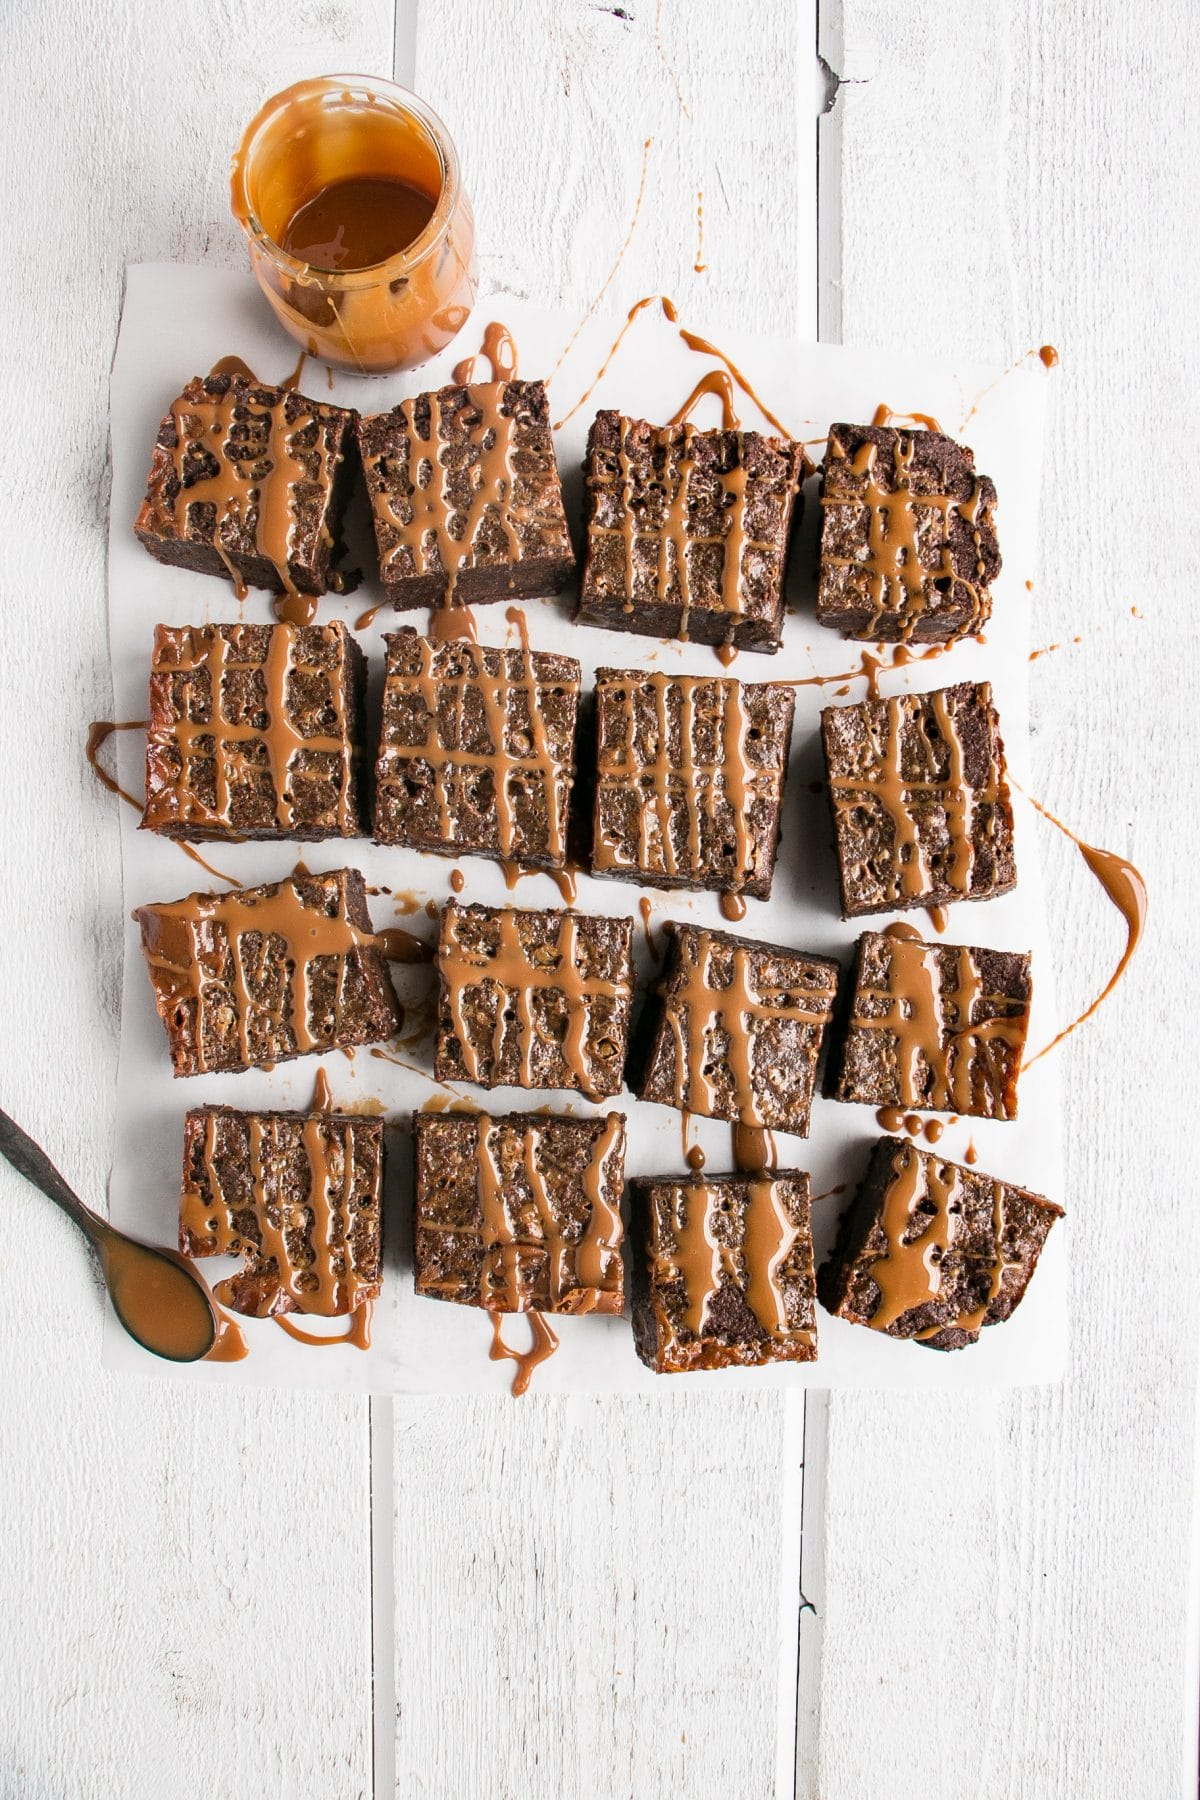 Perfectly chewy and fudgy Ducle de Leche Brownies. #brownies #caramel #dessert #chocolate